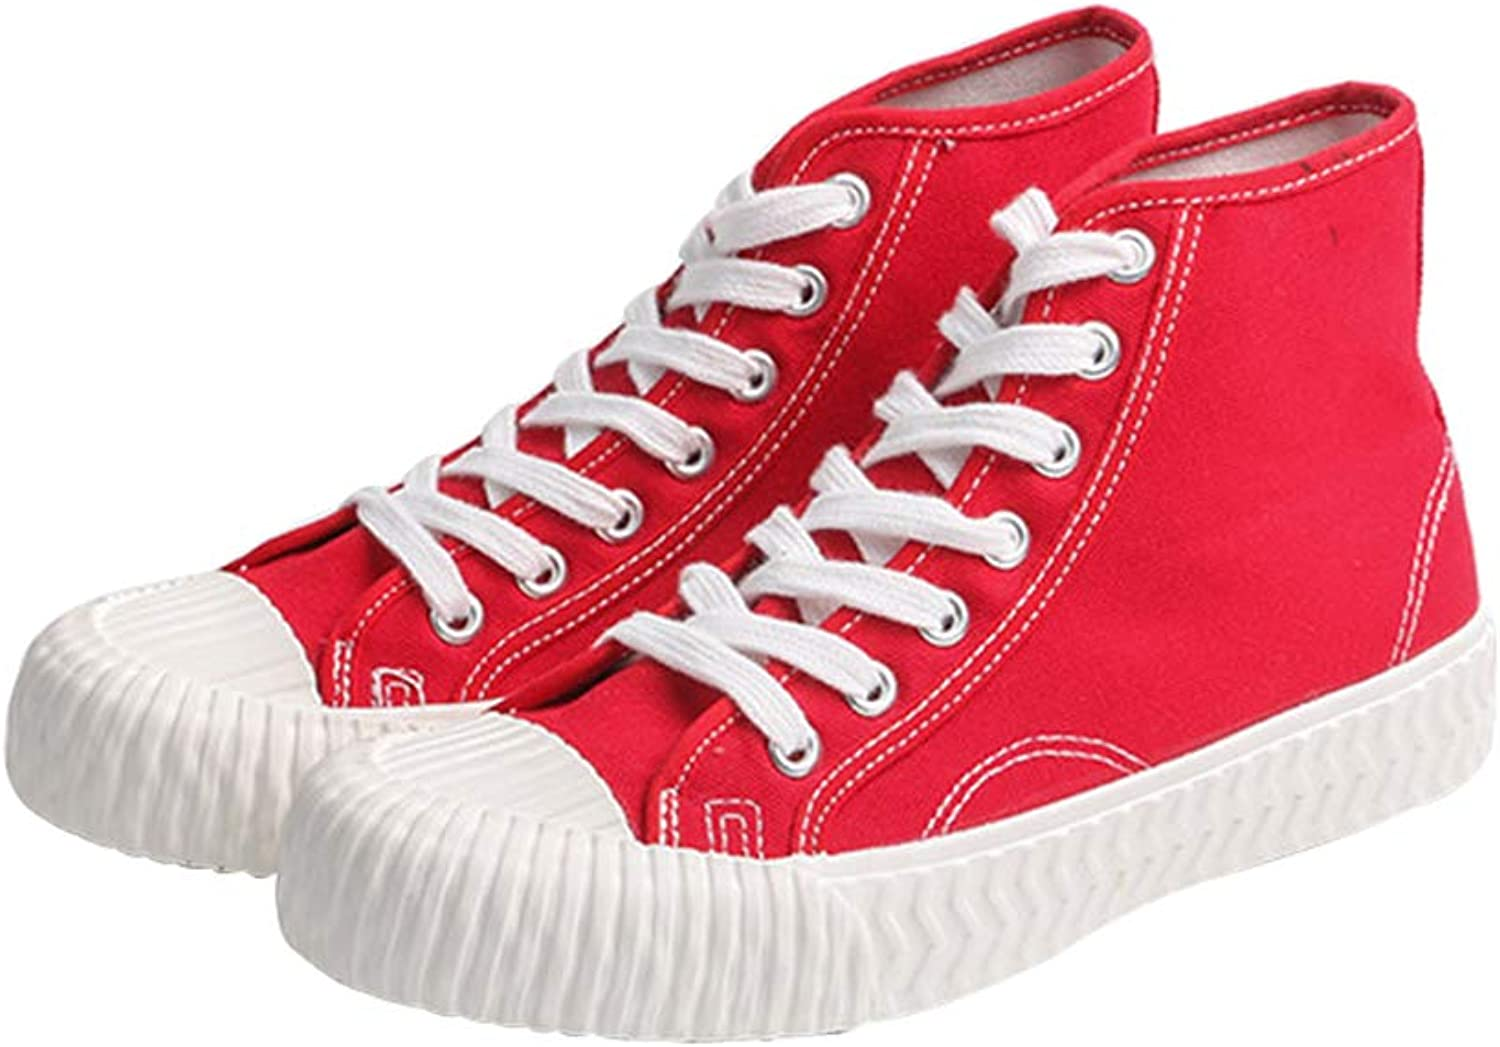 Women's Canvas shoes Japanese High-Top Canvas shoes Wild Breathable shoes High to Help Women's Lace-Up shoes